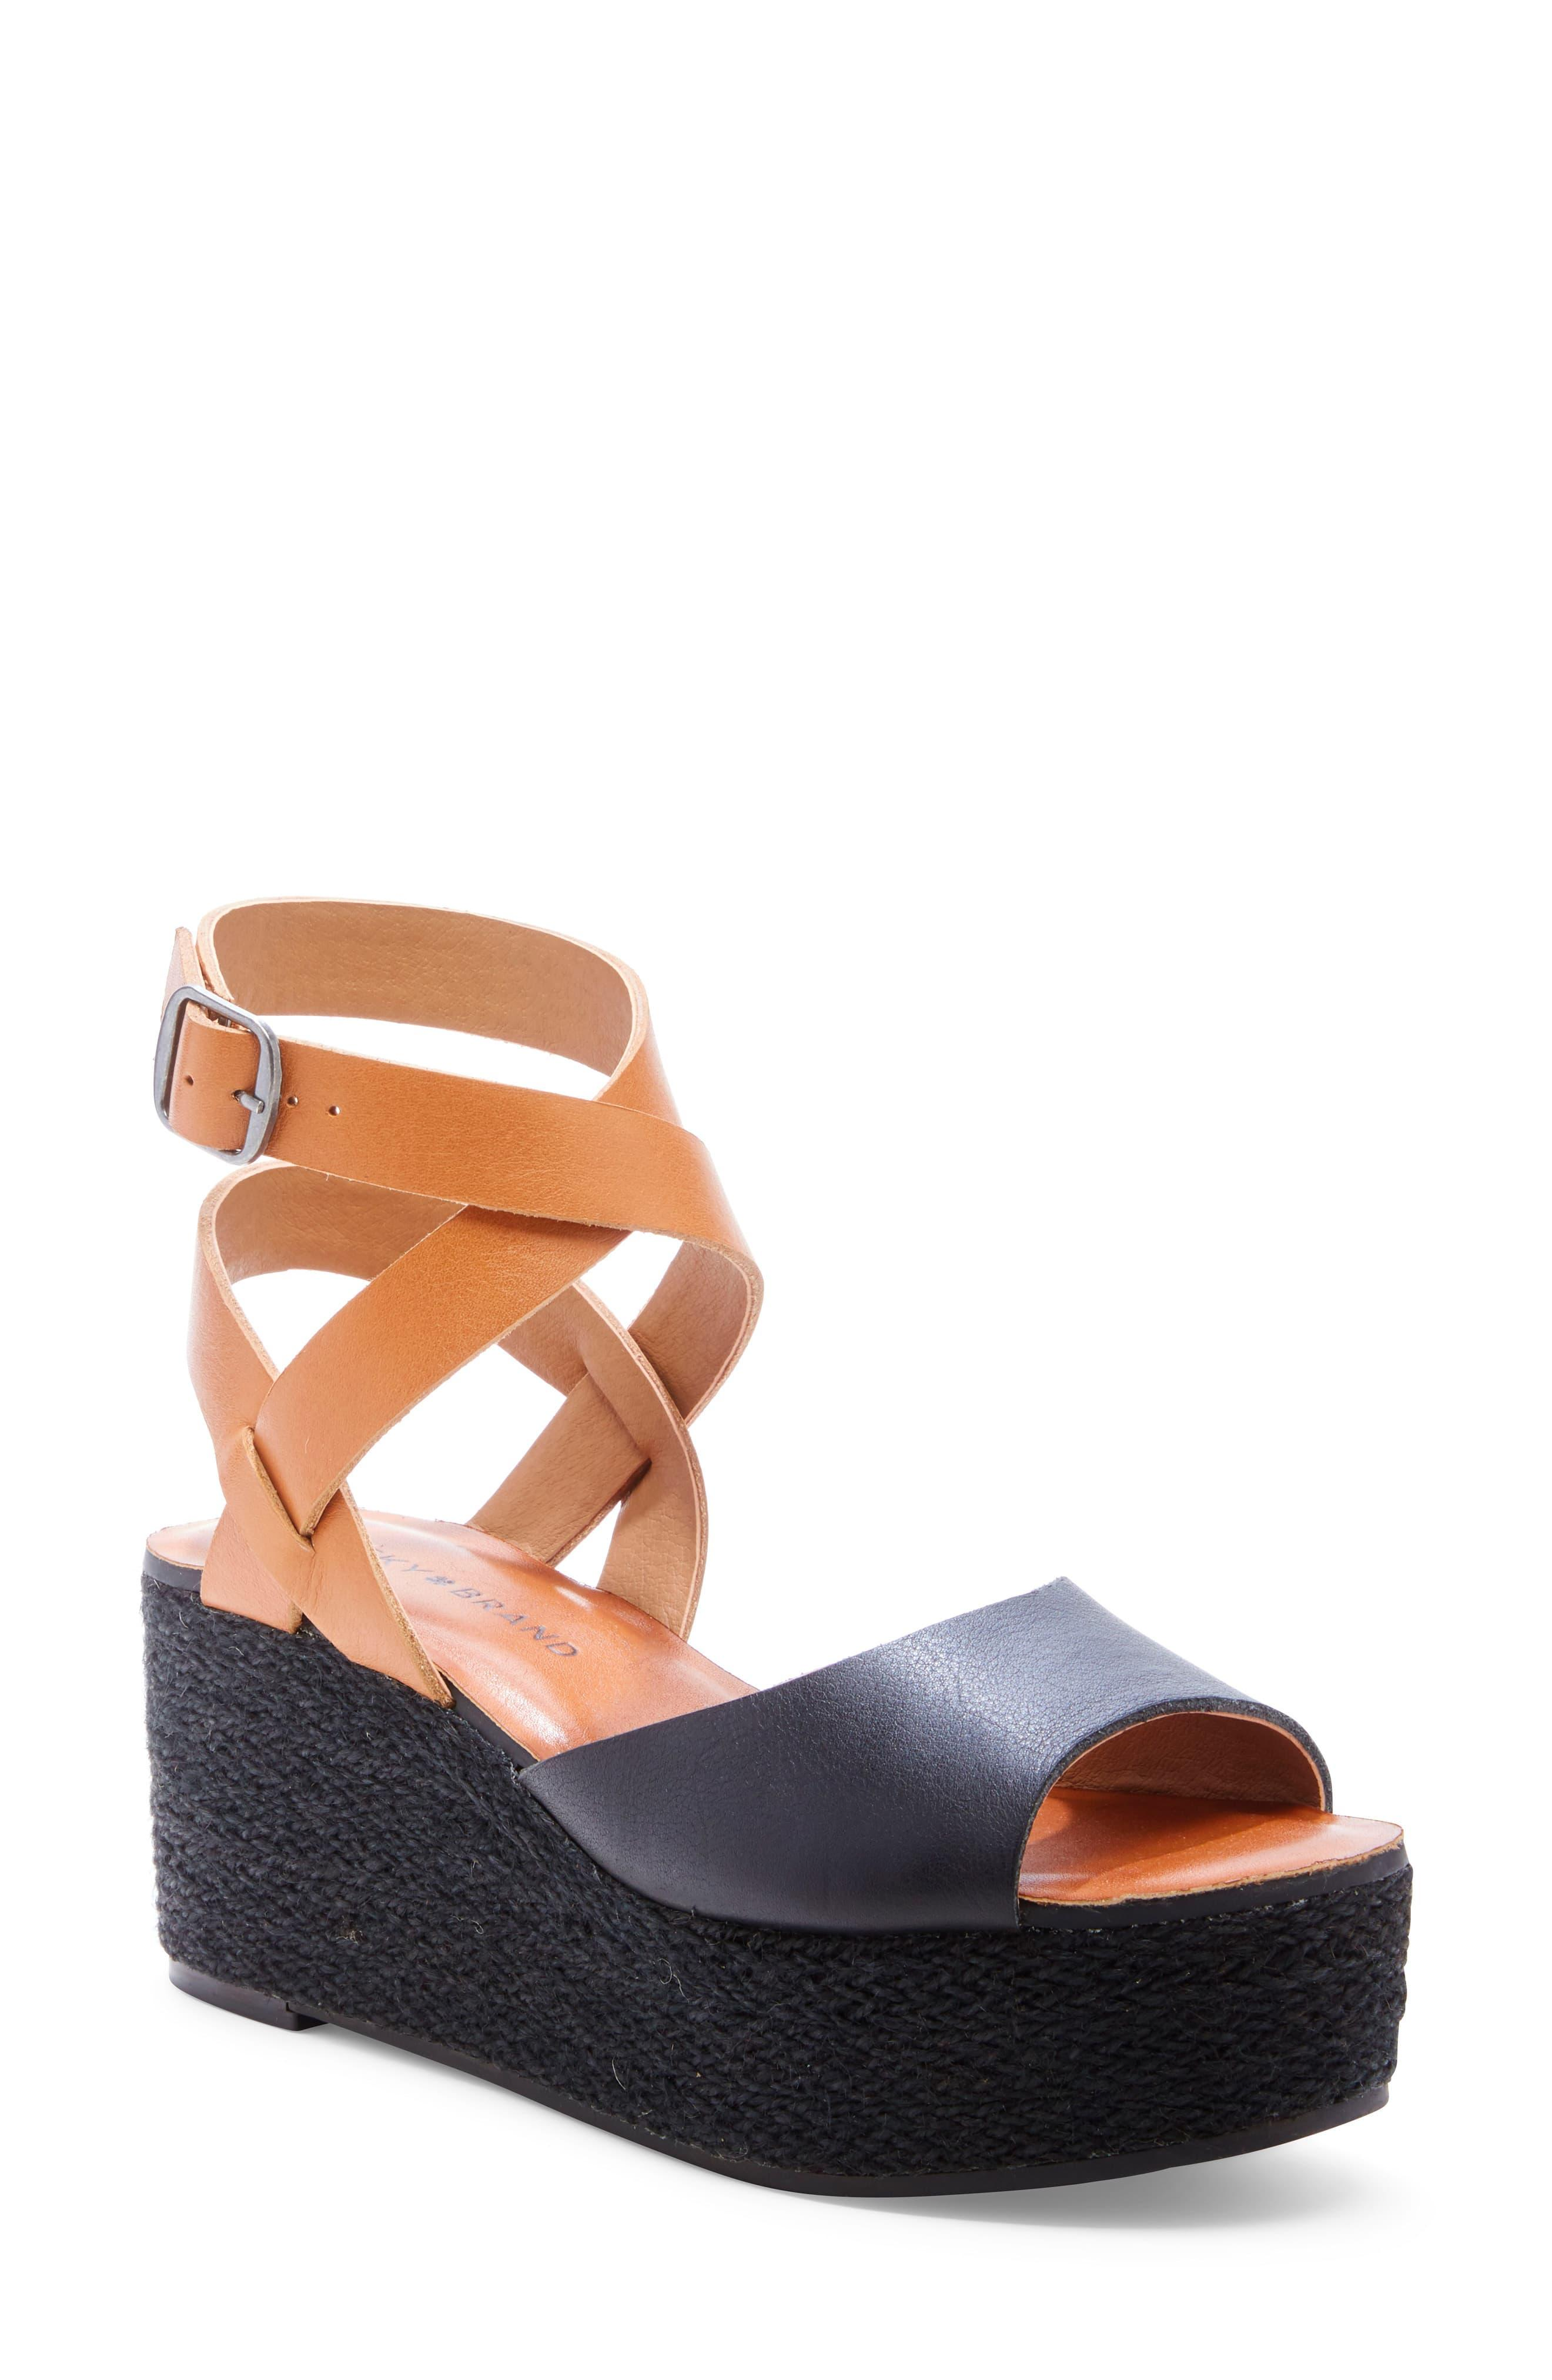 dcedf0e1a0c Lucky Brand Ginny Platform Sandal in Brown - Lyst